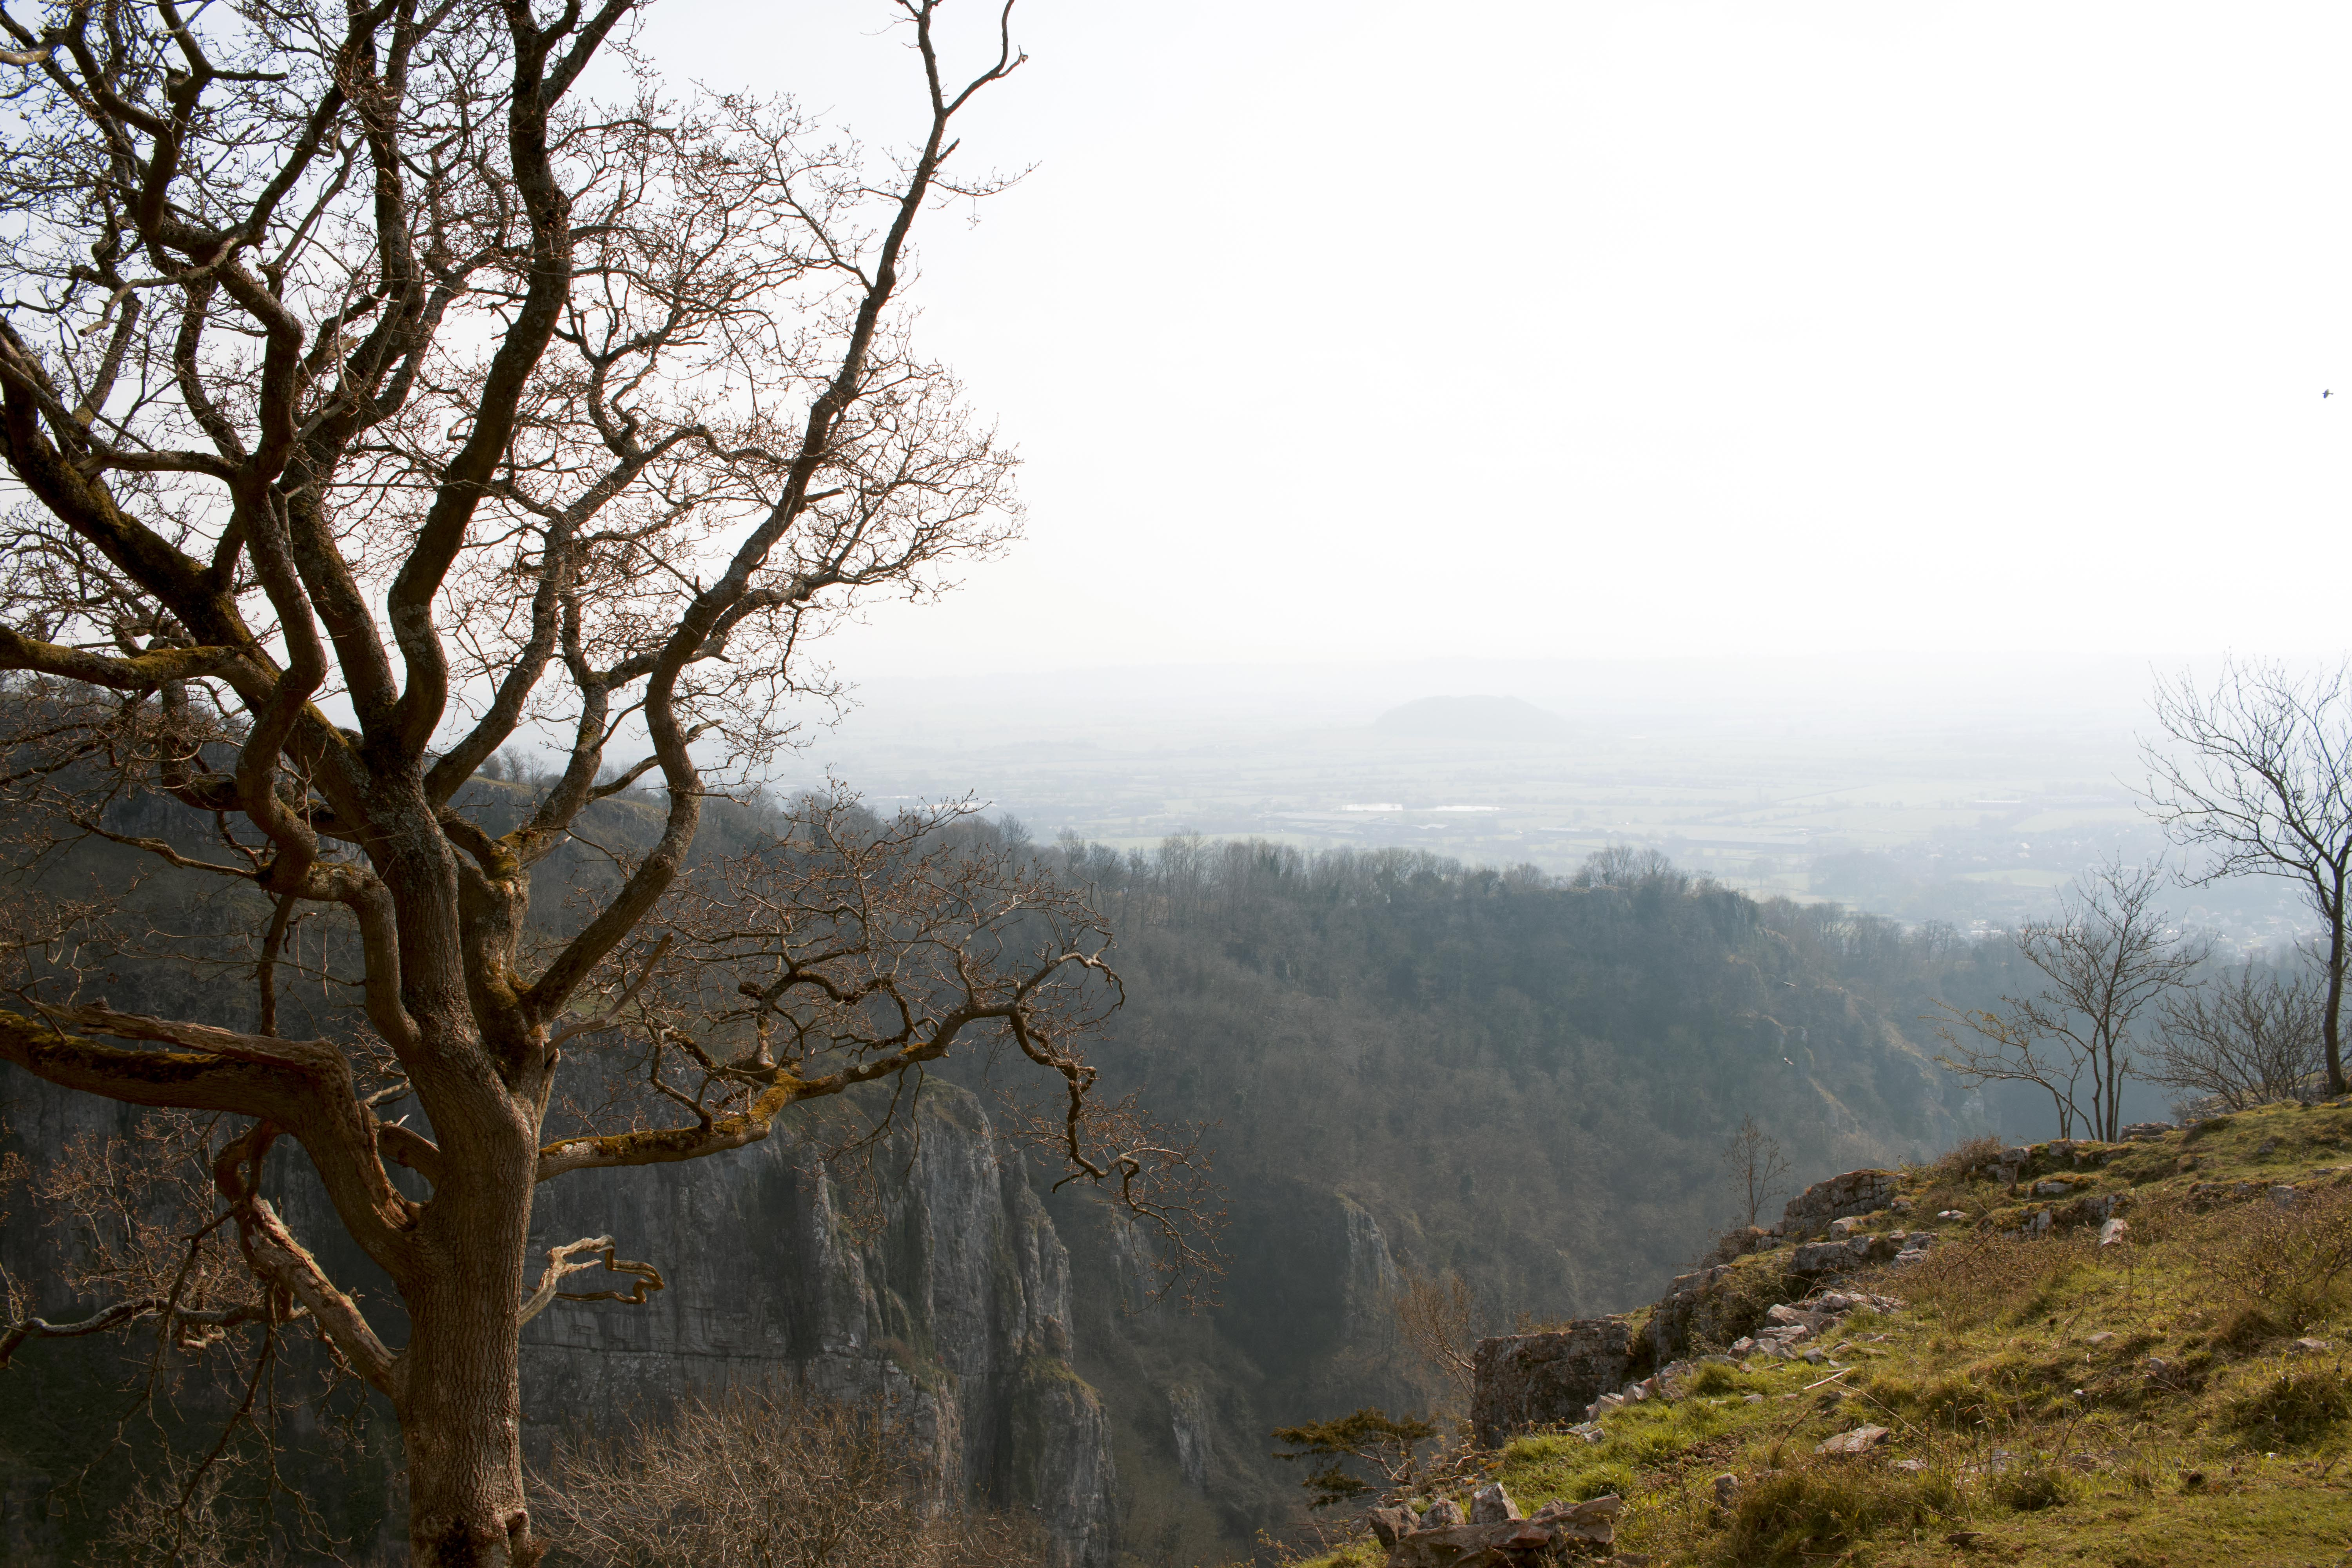 Epic Mountain Views from Chedder Gorge